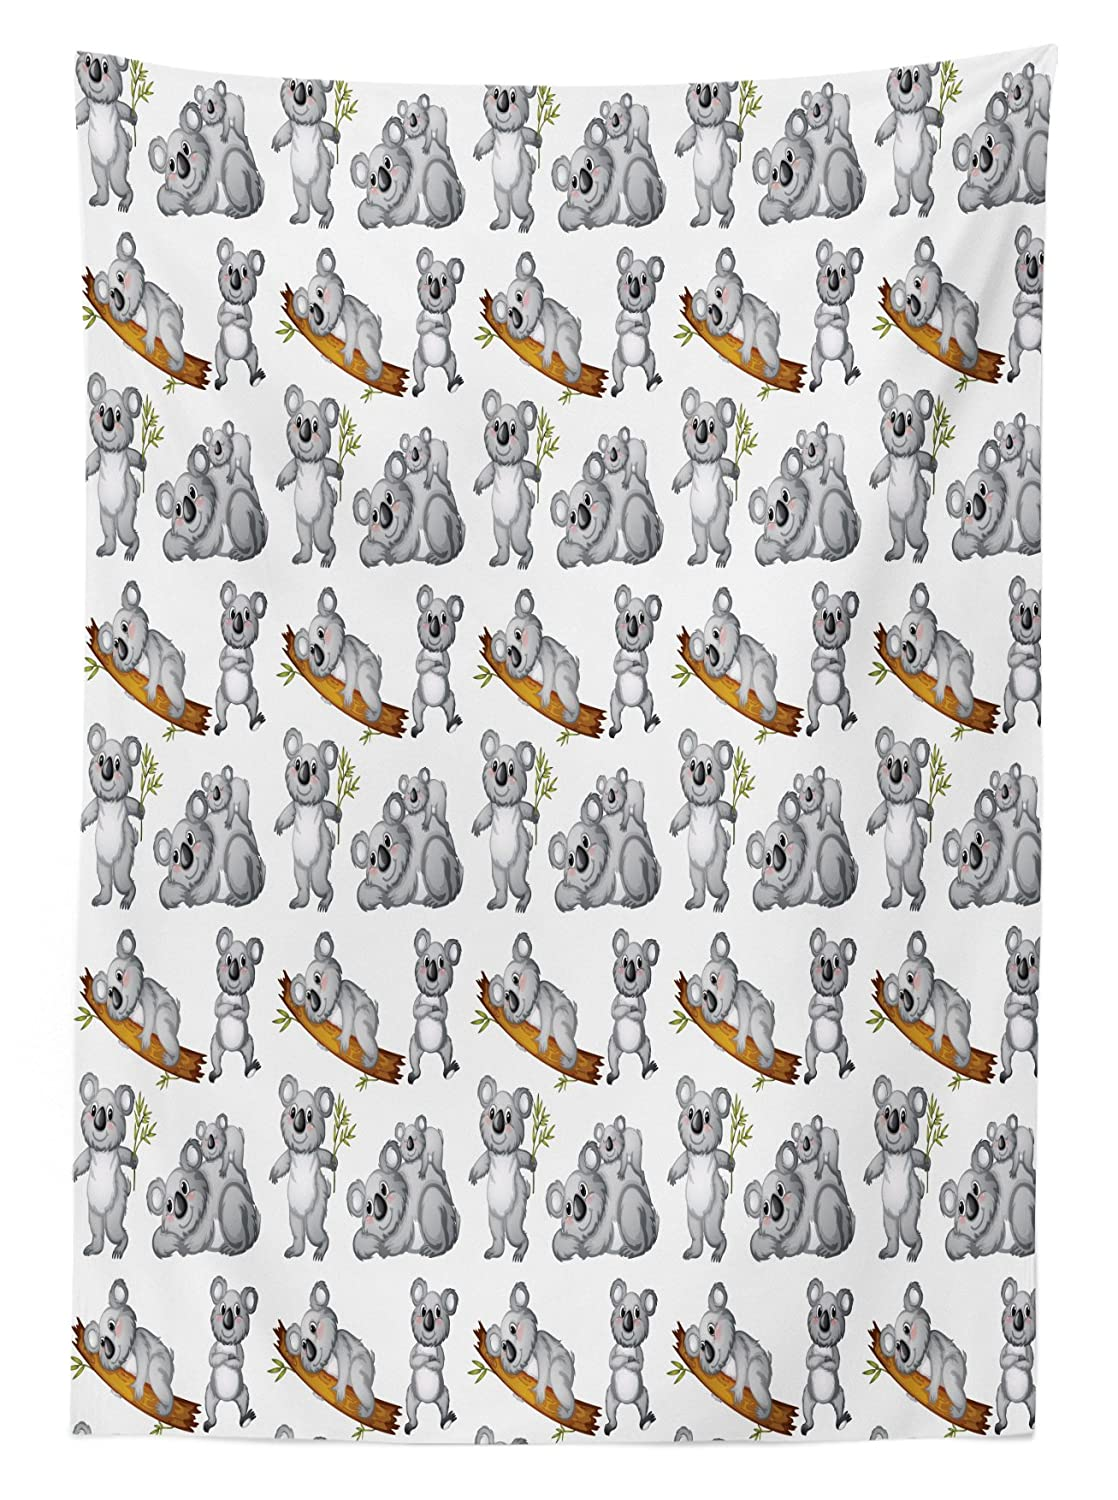 Dining Room Kitchen Rectangular Table Cover 52 W X 70 L inches Bunny with a Basket in Hand and Bird Inside Floral Banner Happy Easter Print Pastel Multicolor tc/_54015/_52x70 Lunarable Rabbit Tablecloth